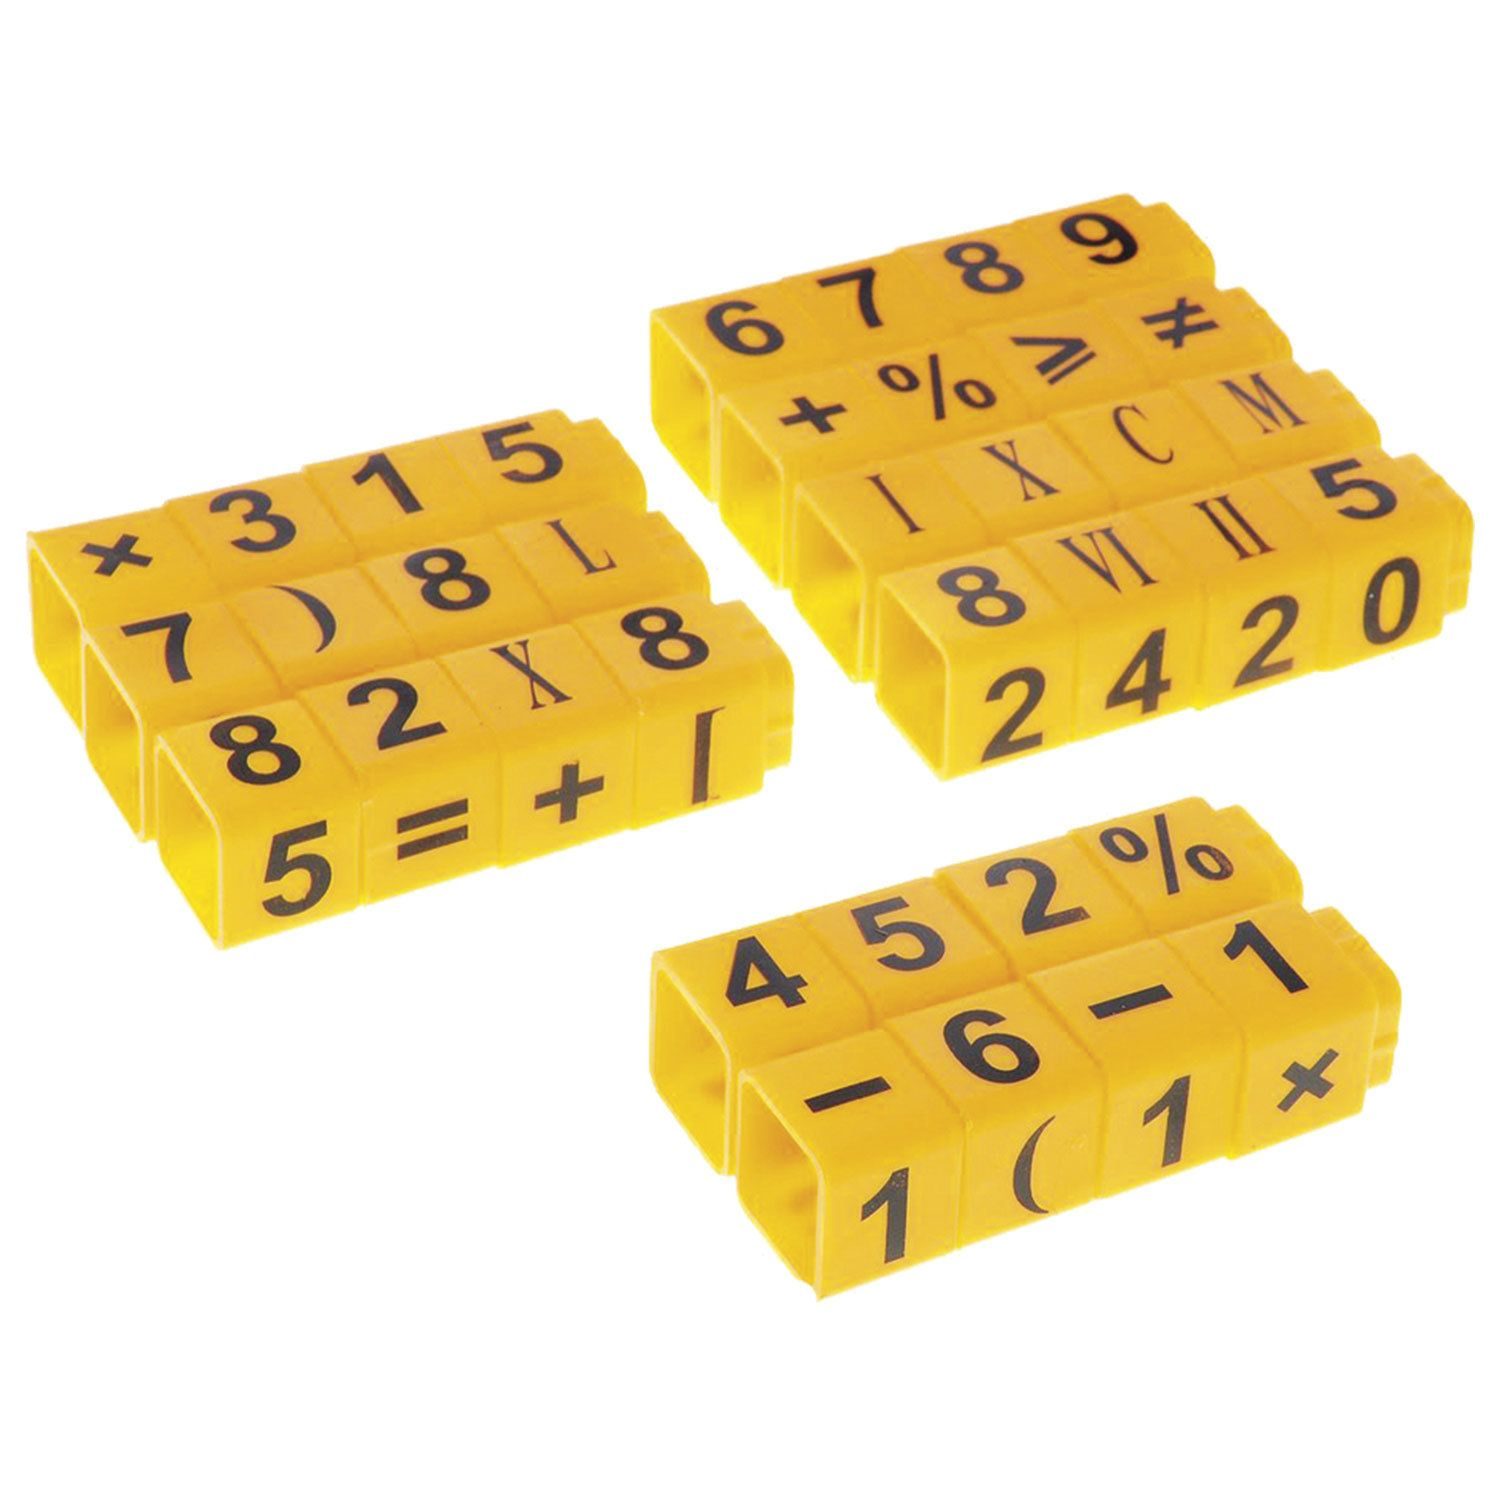 """Preceded by """"Smart blocks. 1, 2, 3, 4, 5"""", for math learning, INTELLIGENT"""